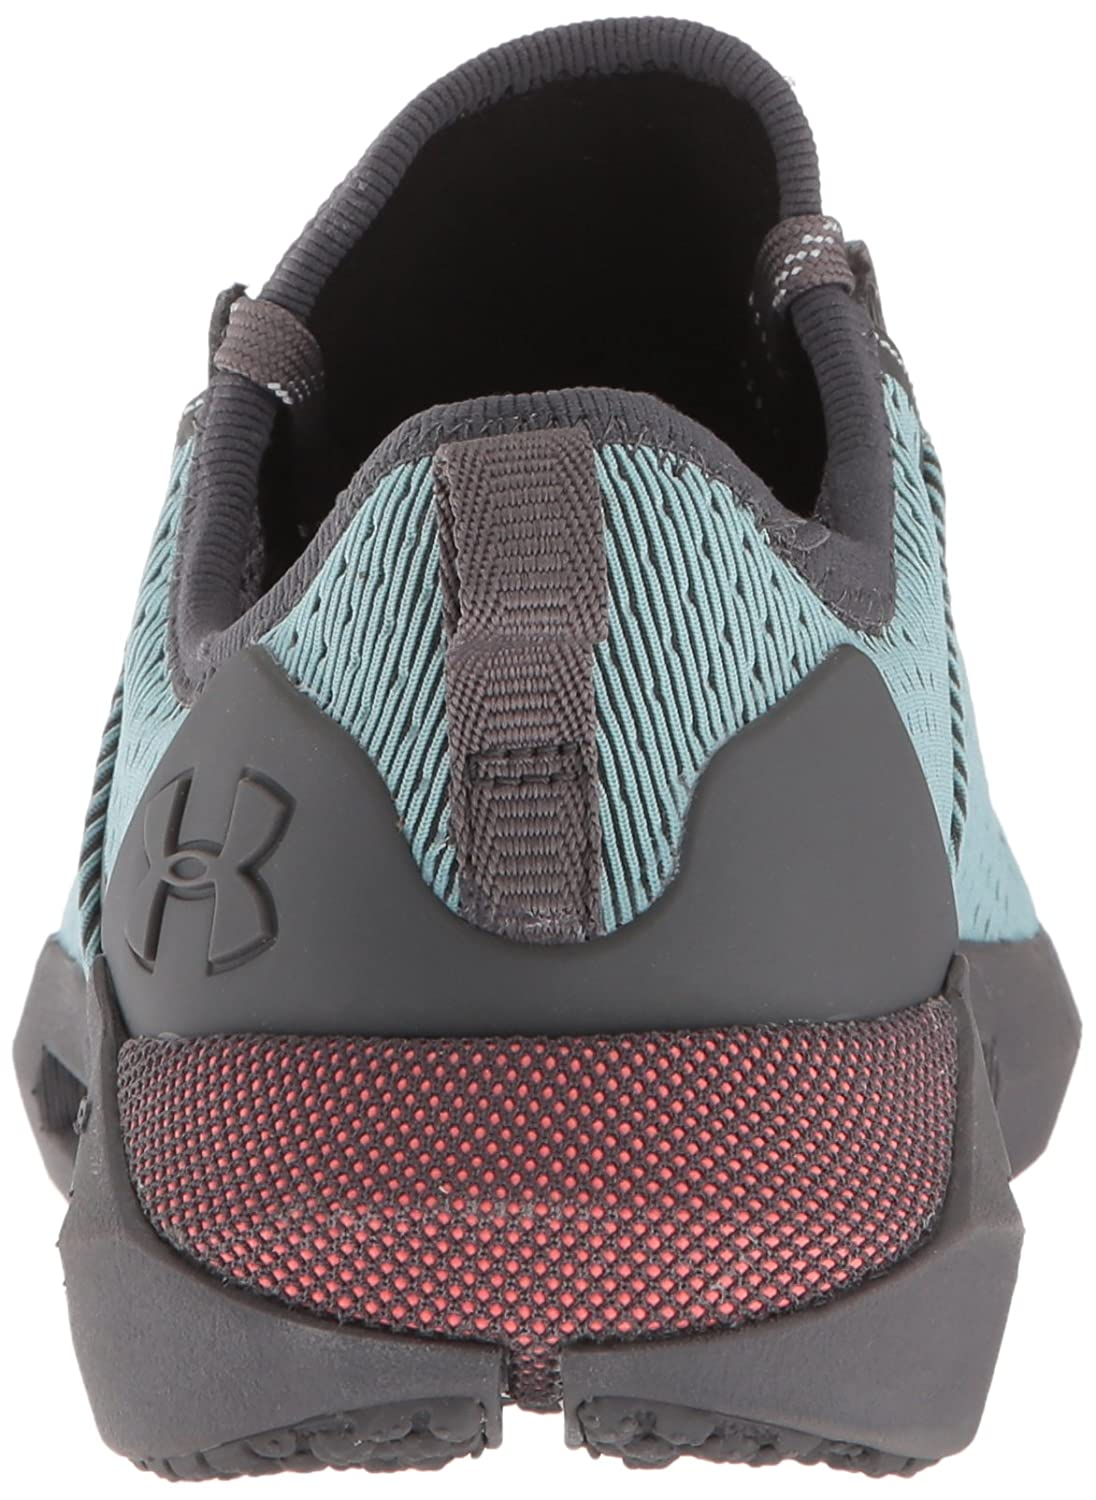 Under Armour Women's HOVR SLK Sneaker B076RT1WQH 10.5 B(M) US|Charcoal (103)/Basel Blue